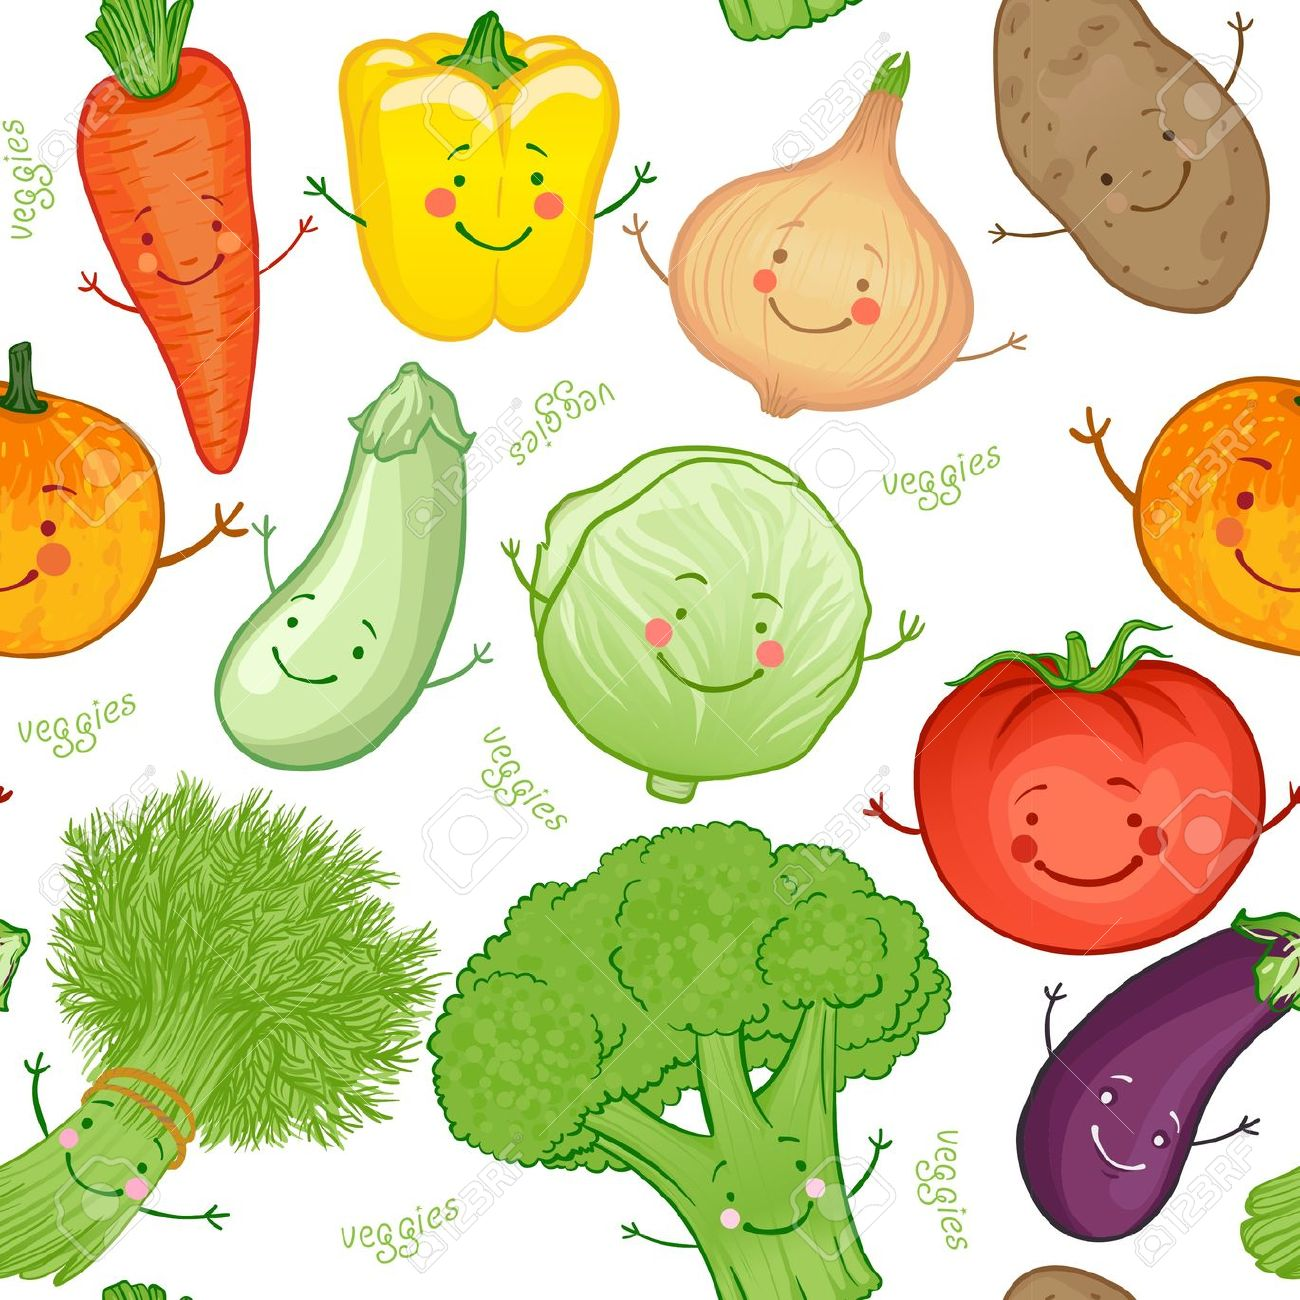 Vegetable clipart vege Tiny Vegetables 188 Clipart Clipart